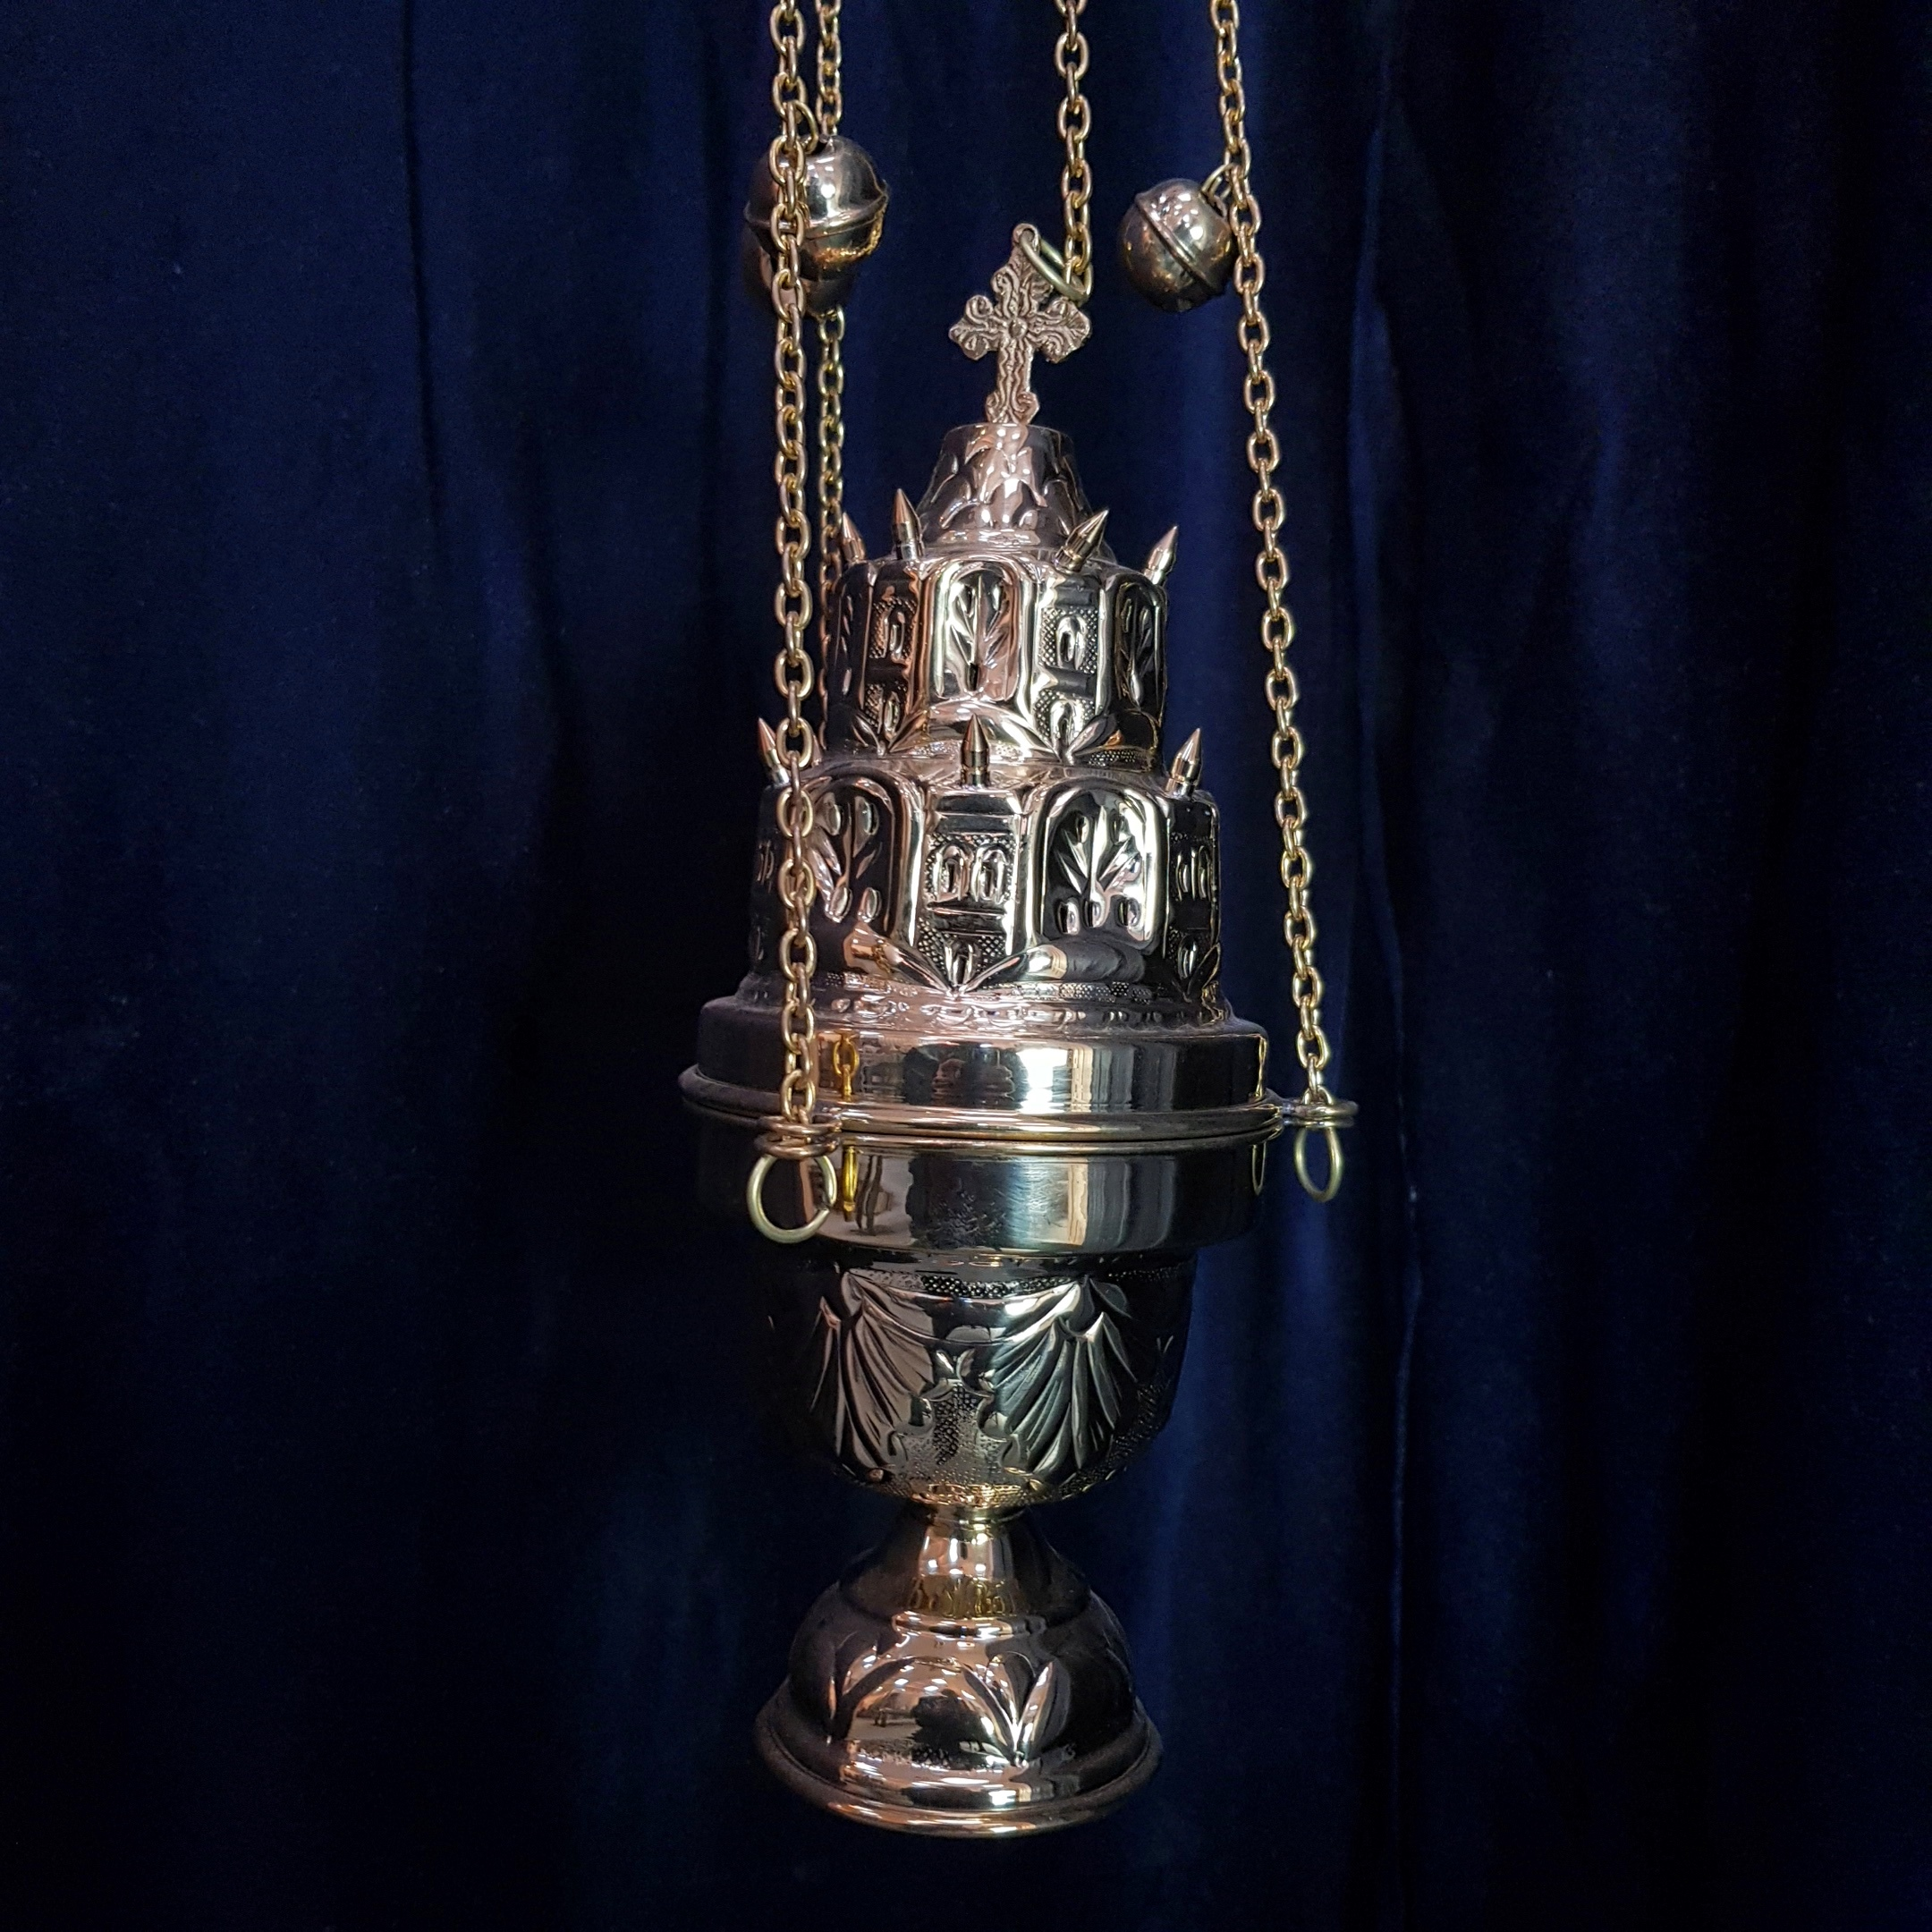 Spiked Temple Thurible Censer Antique Church Furnishings